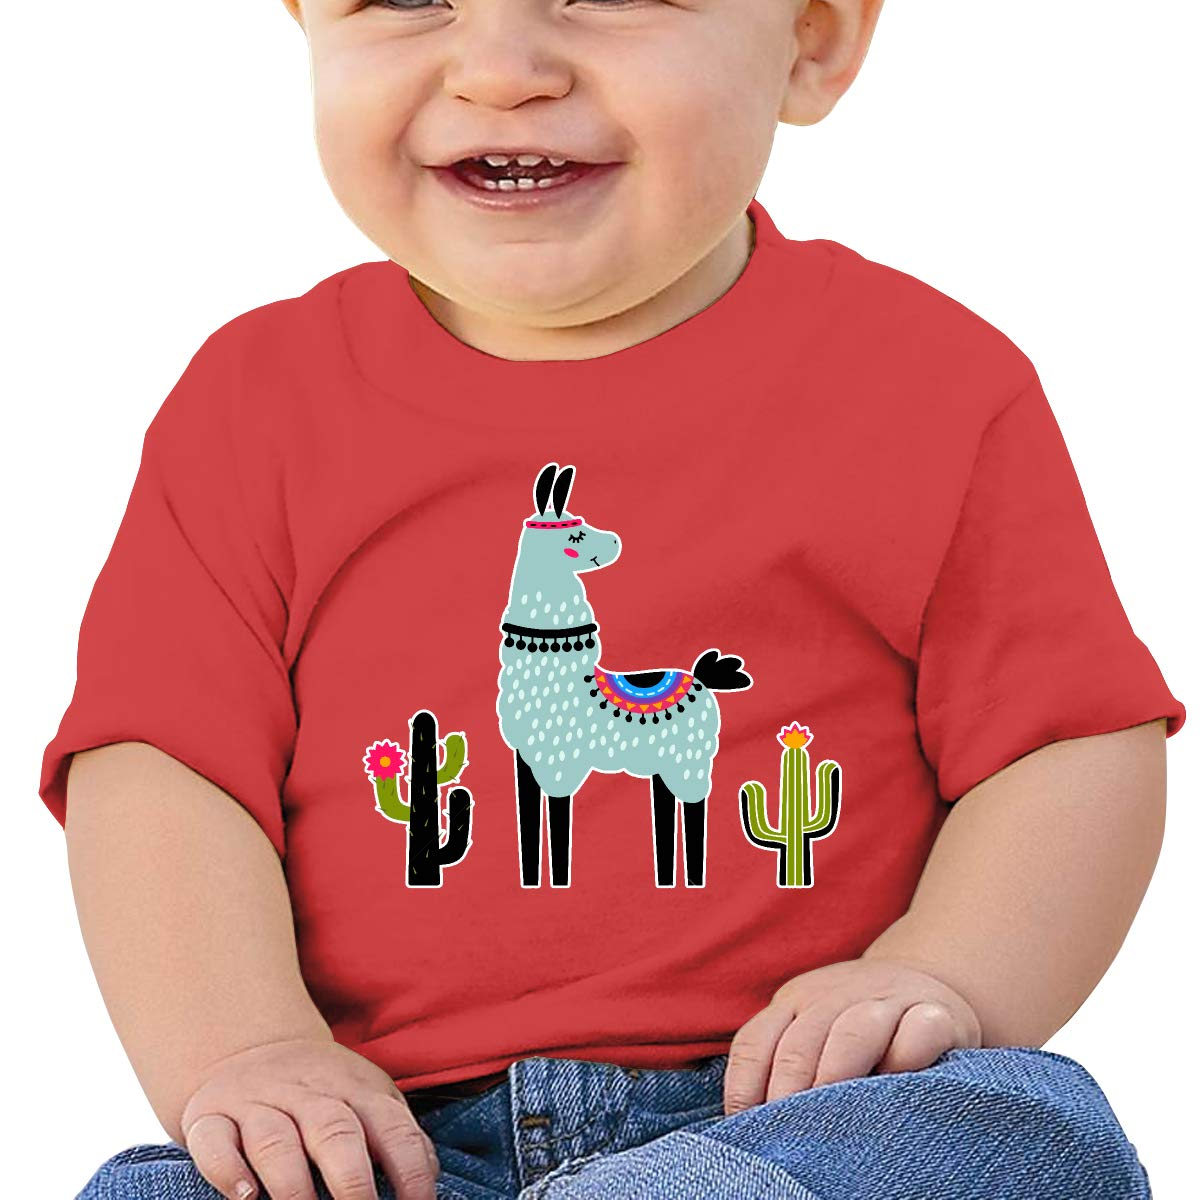 XHX403 Cute Llama with Cactus Infant Kids T Shirt Cotton Tee Toddler Baby 6-18M